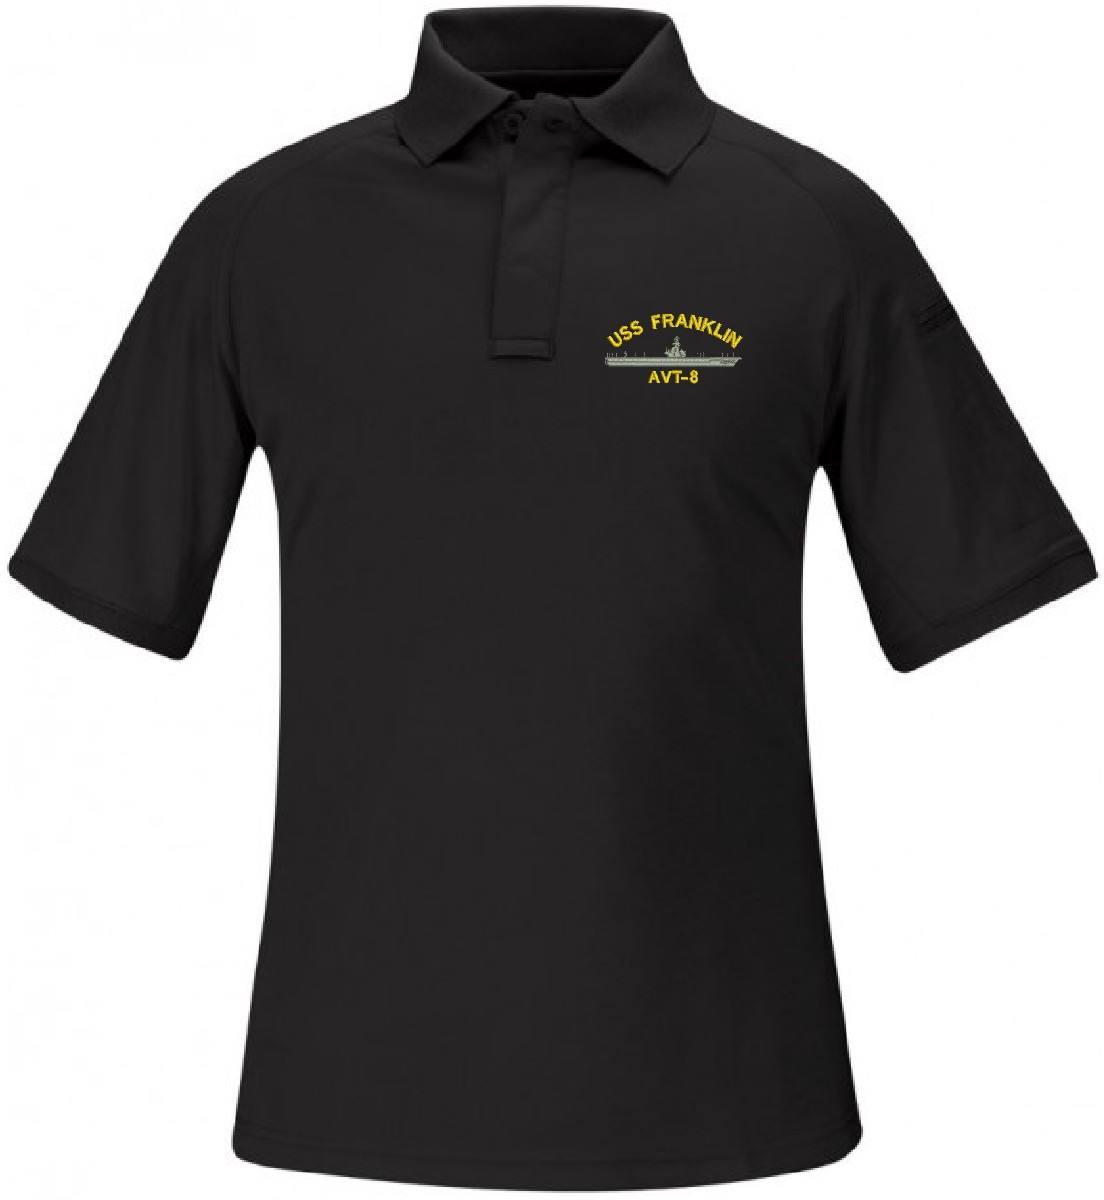 Custom Embroidered USS Franklin AVT-8 Propper Brand Polo: militarybest.com/custom-franklin-avt8-propper-polo.html